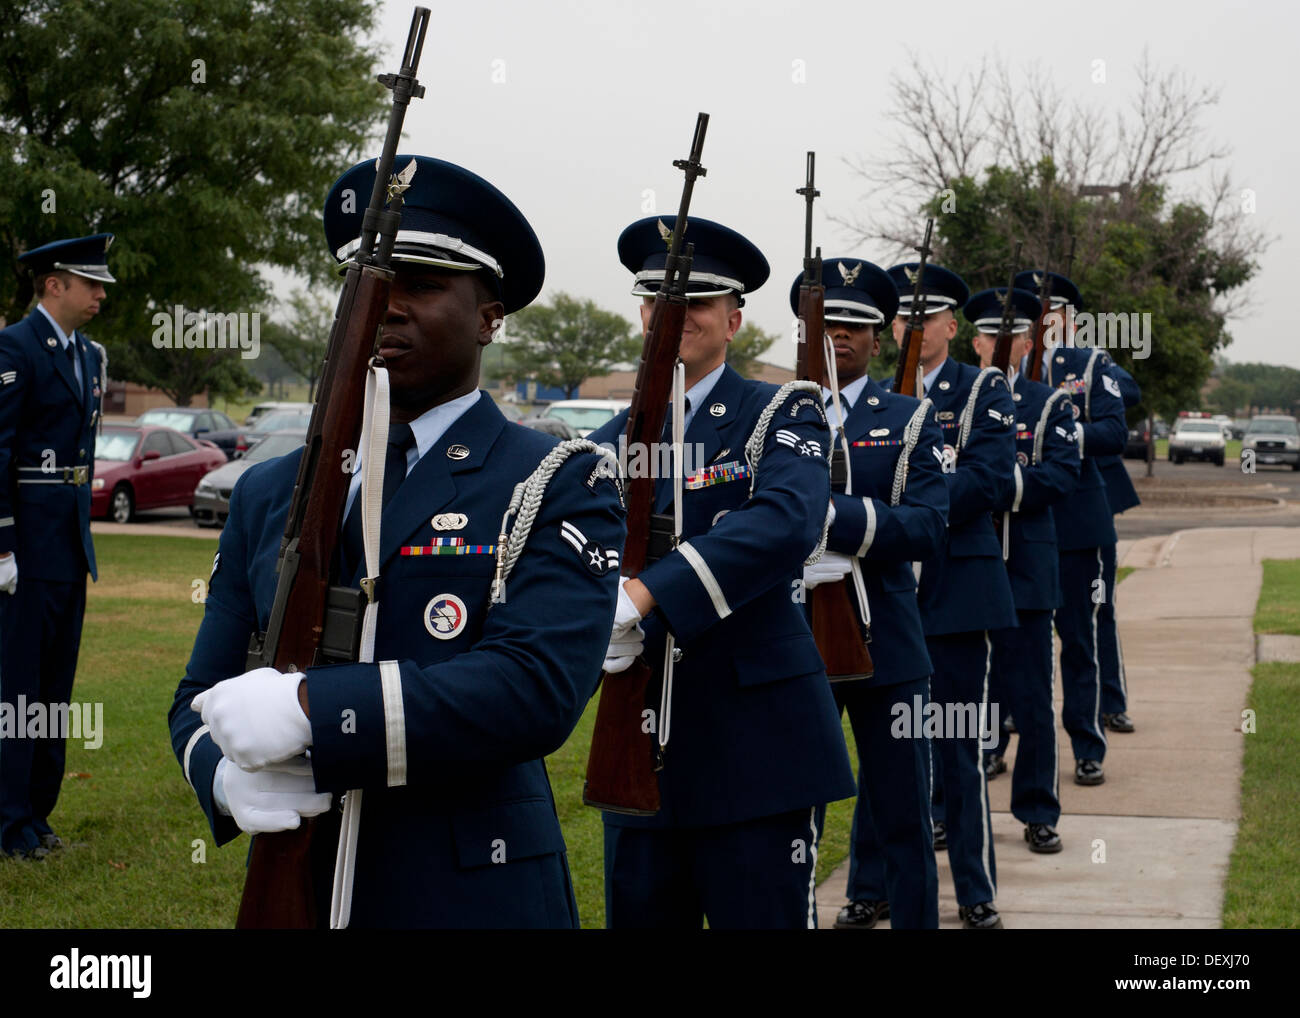 Airmen from the 22nd Air Refueling Wing Honor Guard prepare to render a 21-gun salute Sept. 16, 2013, at McConnell Air Force Base, Kan. This ceremony is practiced until it can be flawlessly performed. - Stock Image